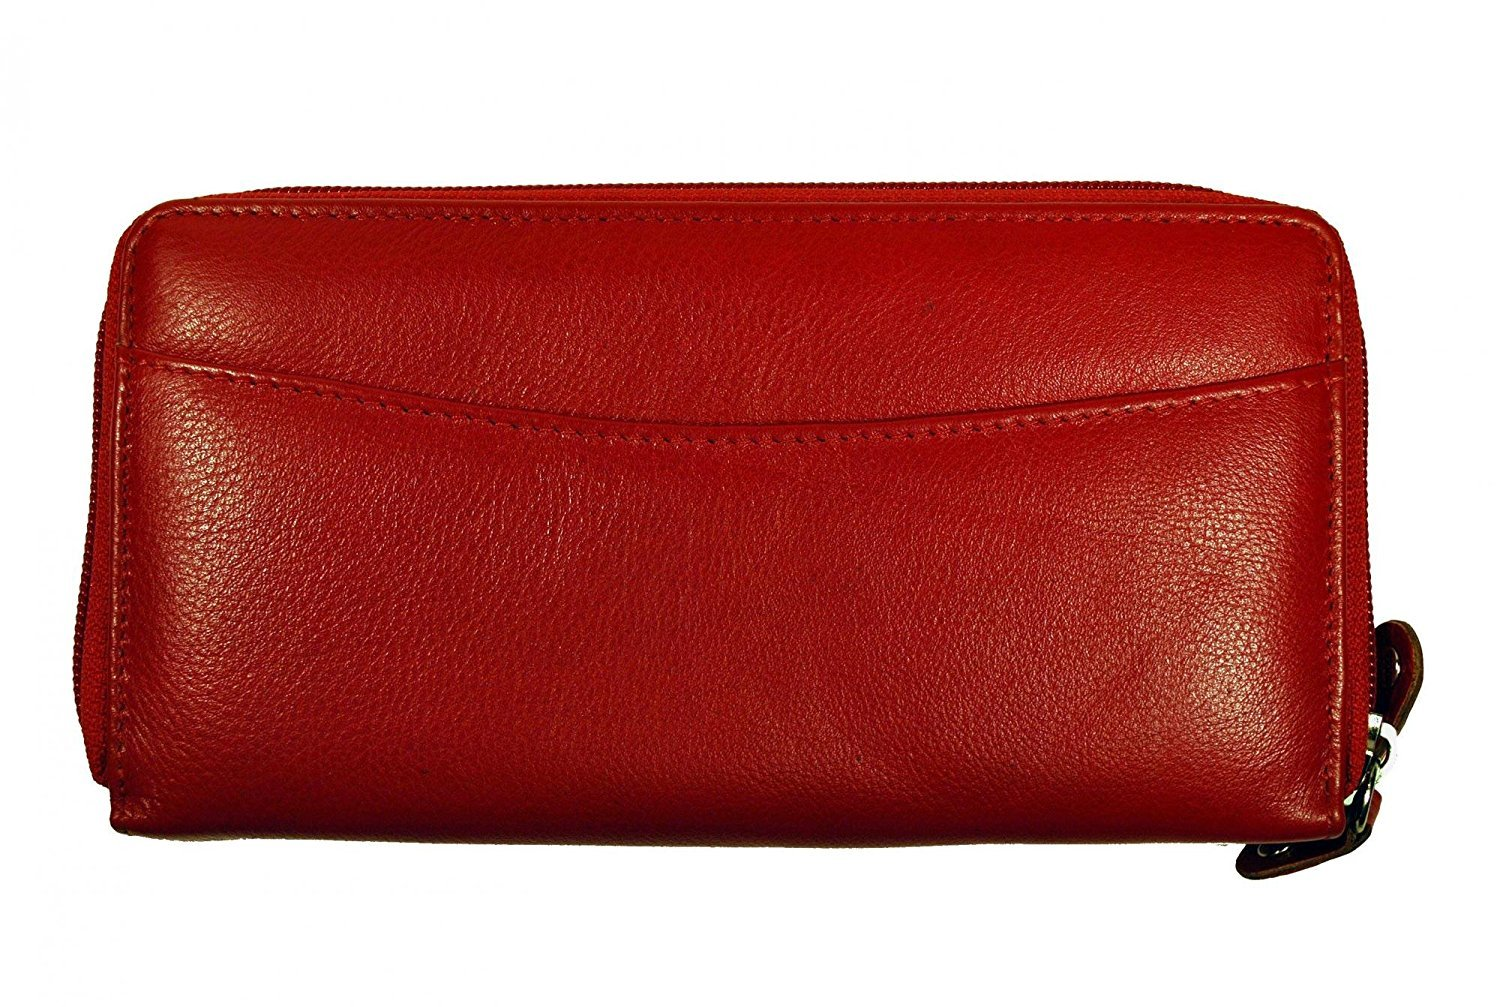 Budd Leather Calf Double Zip Around Credit Card Wallet With RFID - Red